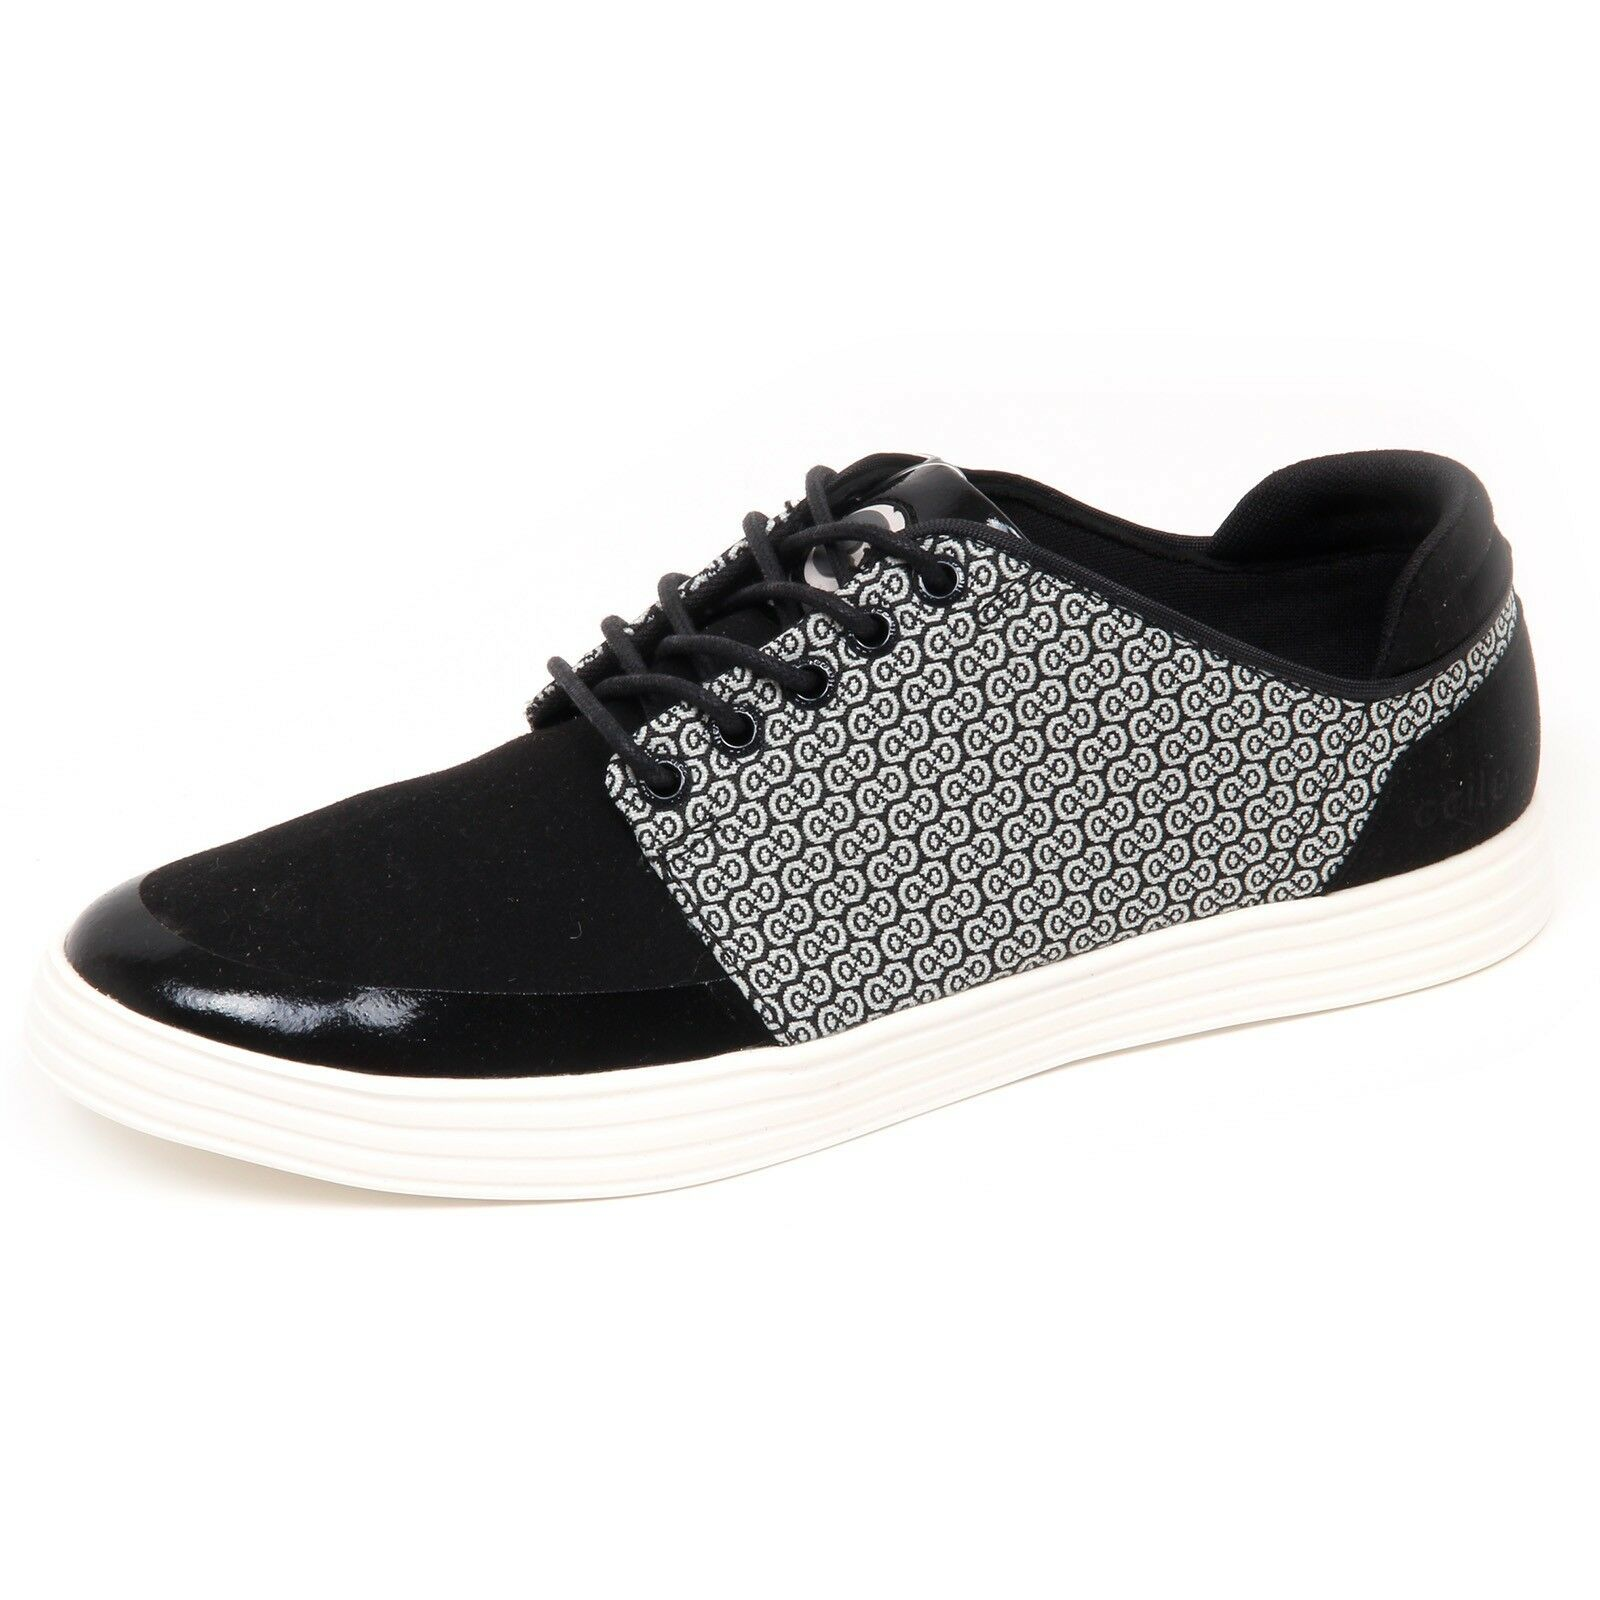 E8238 (WITHOUT BOX) sneaker uomo white/black CCILU tissue/eco suede shoe man